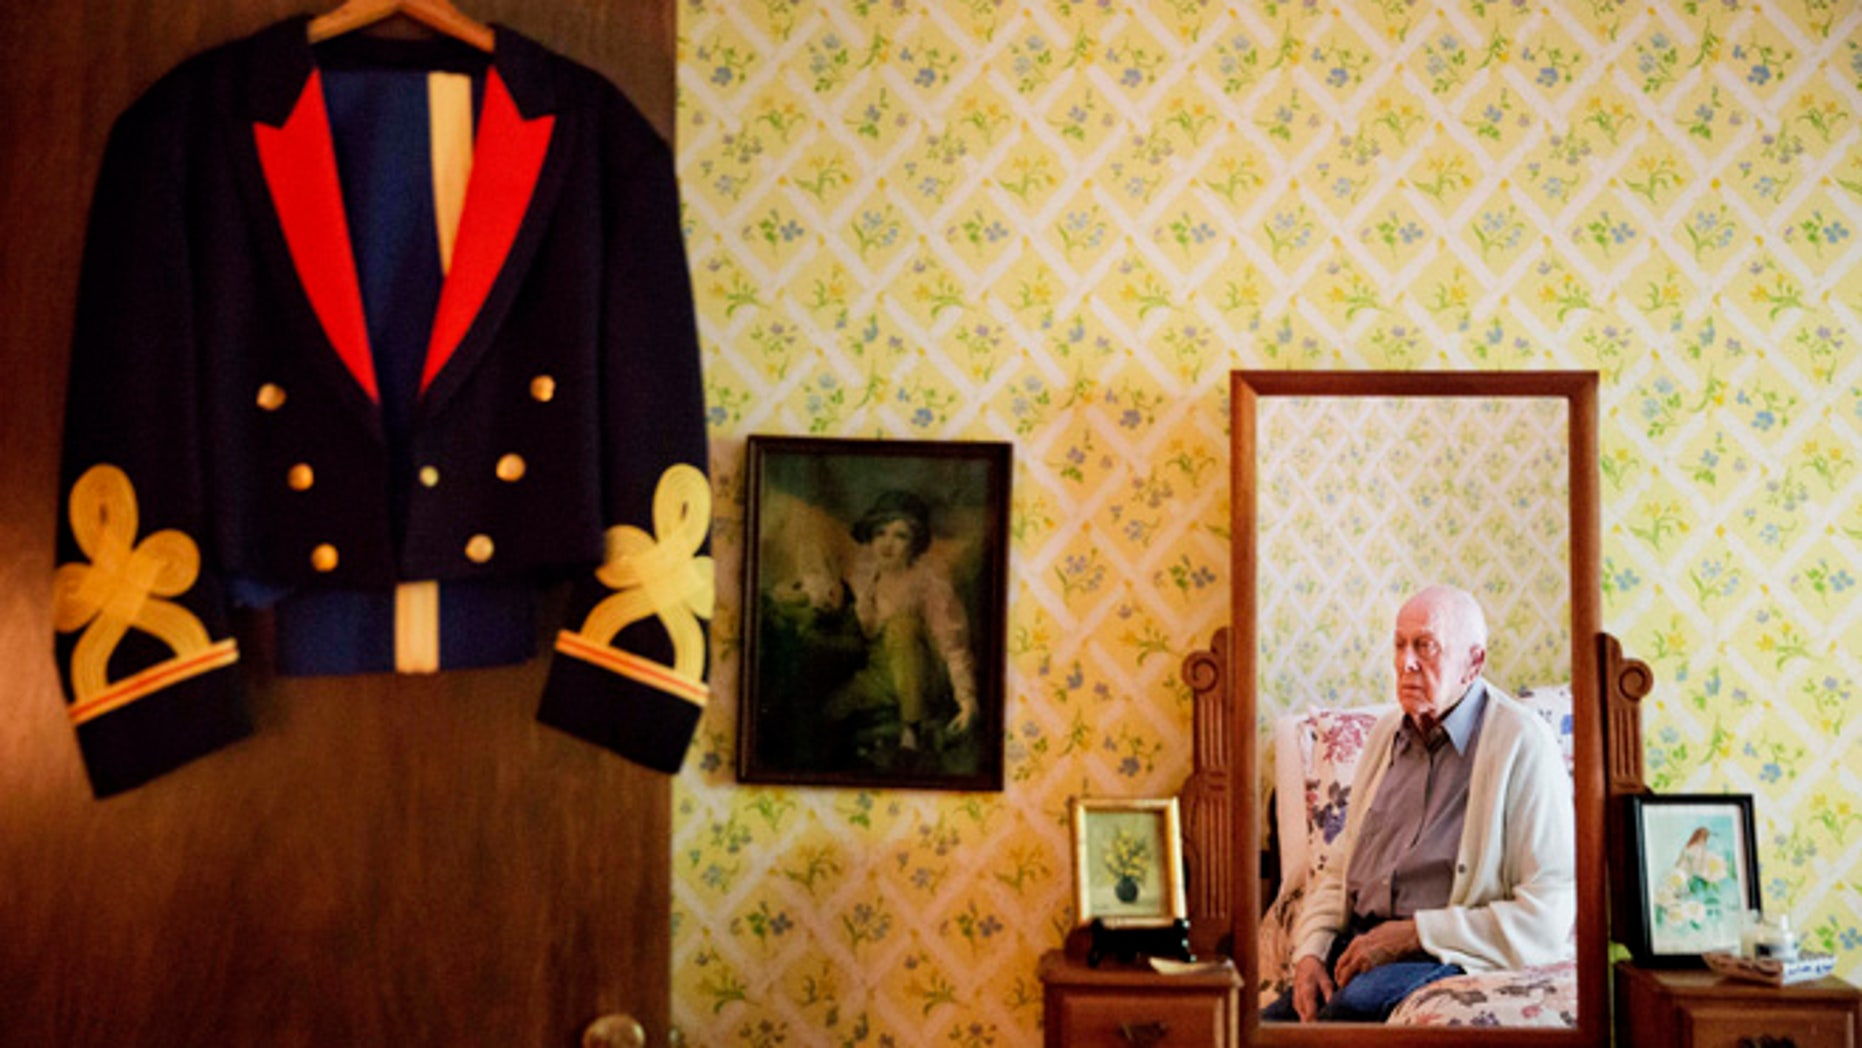 Frank Gleason, 96, a retired colonel with the Office of Strategic Services, looks at his old blue mess dress uniform hanging on a door as he sits in his home in Atlanta, Wednesday, Sept. 28, 2016.